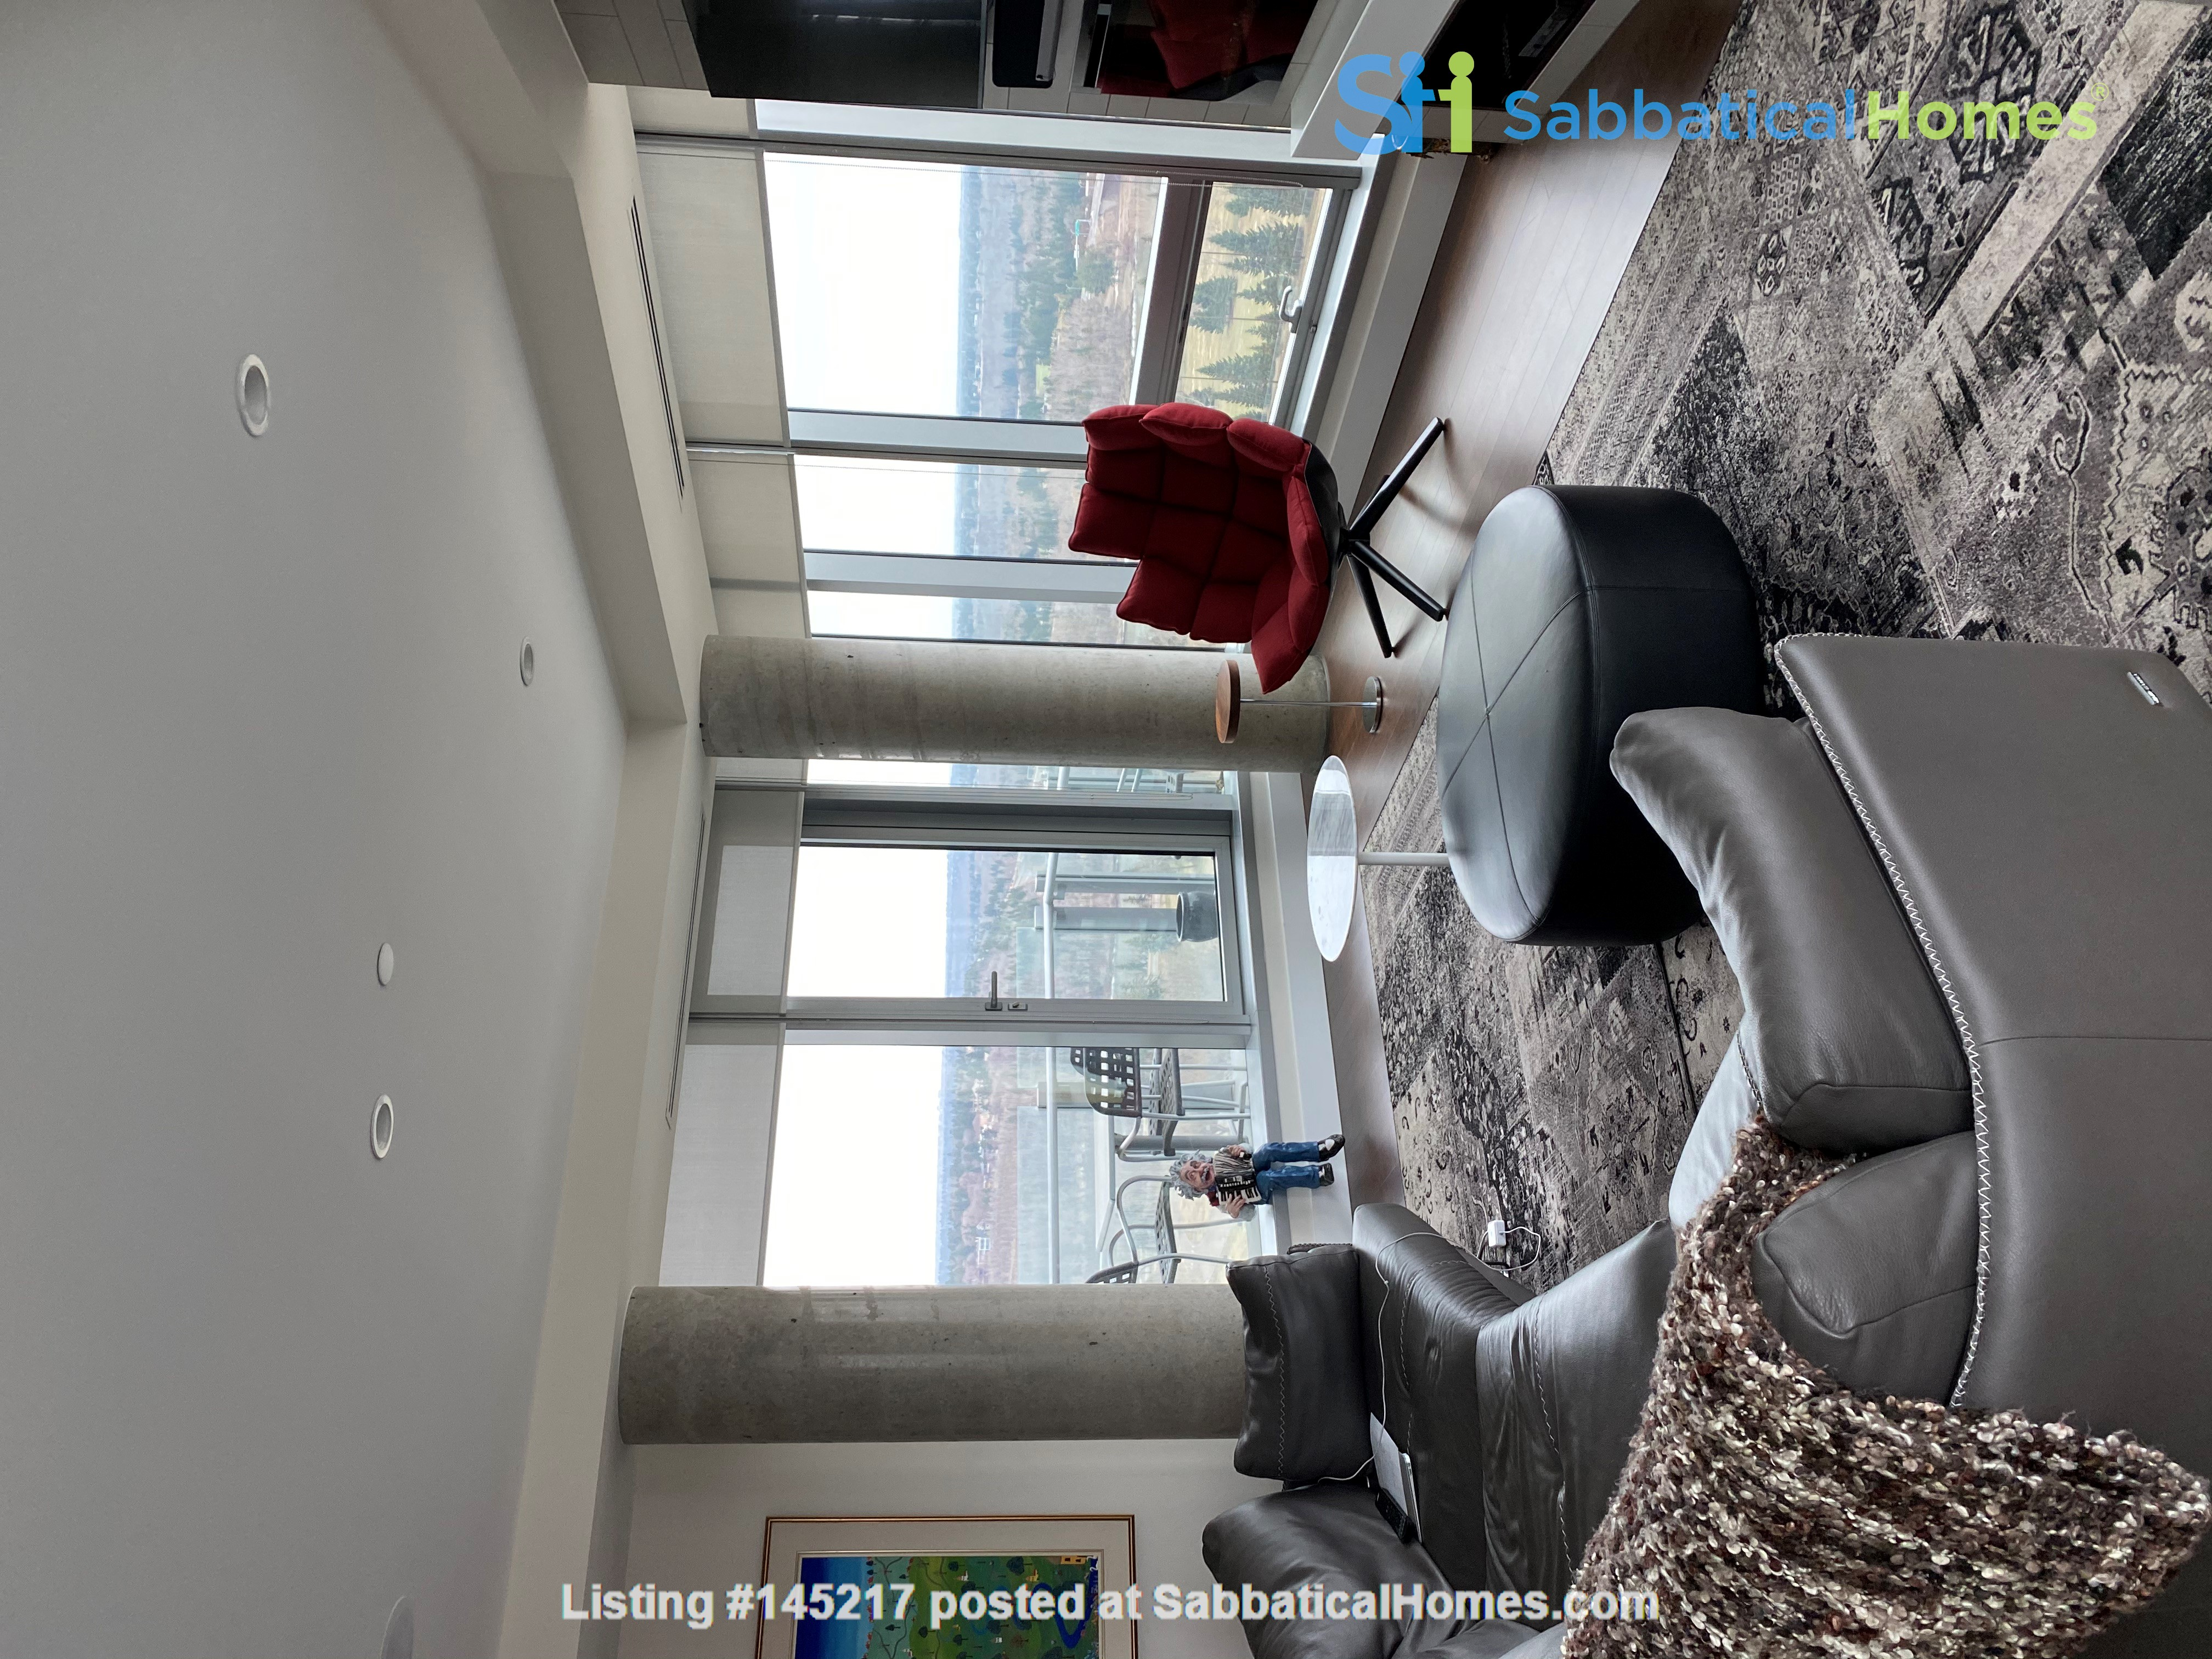 Gorgeous, spacious condo close to universities, hospitals and downtown Home Rental in Edmonton, Alberta, Canada 0